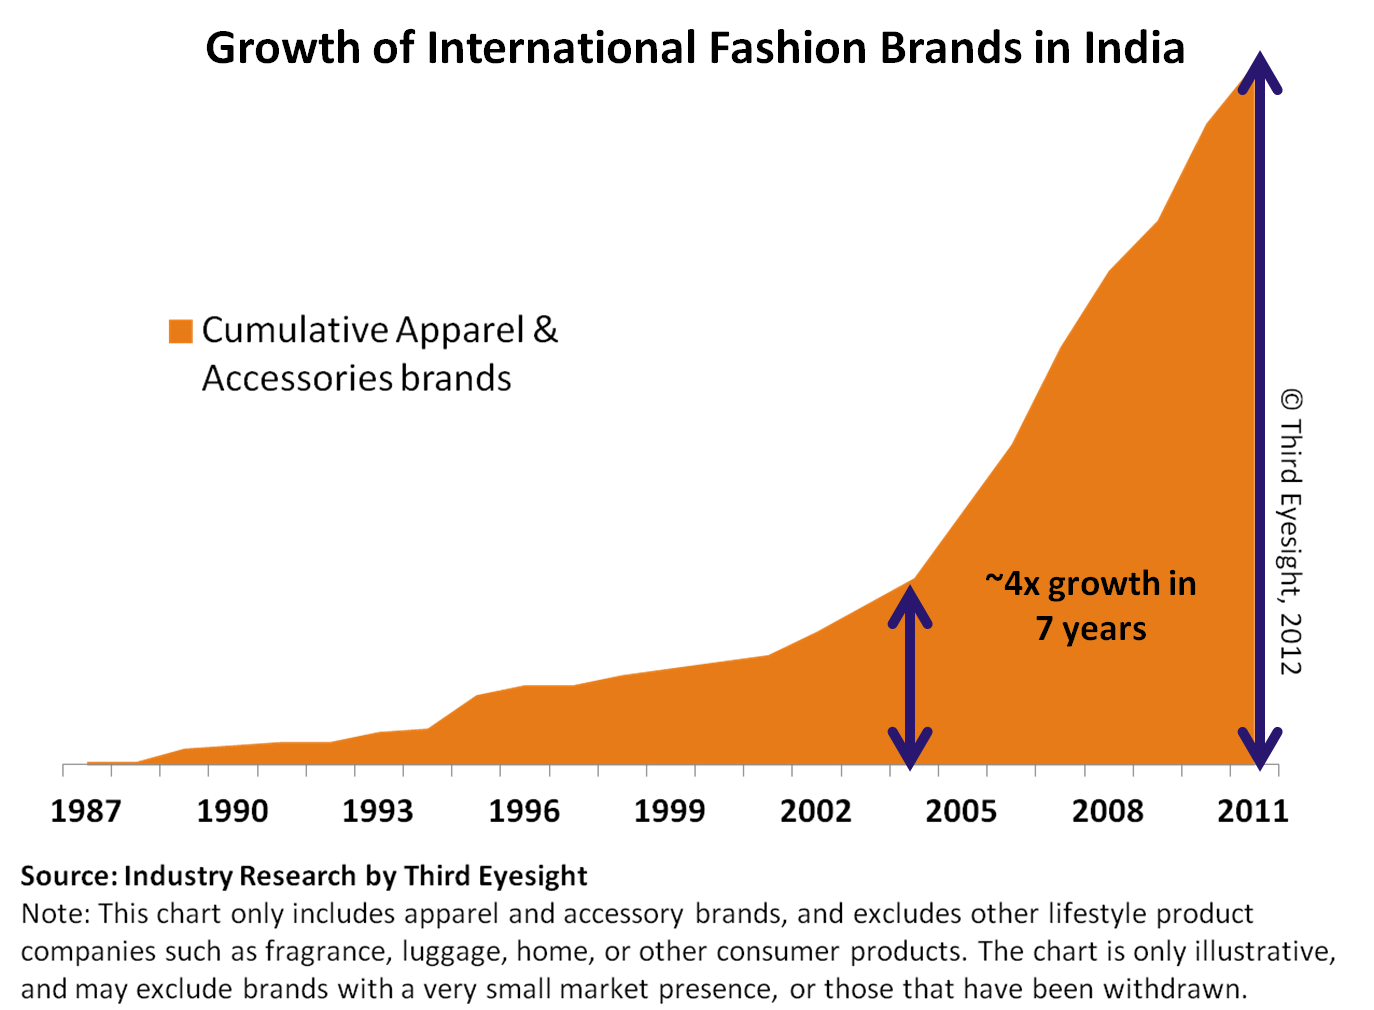 Growth of international fashion brands in India